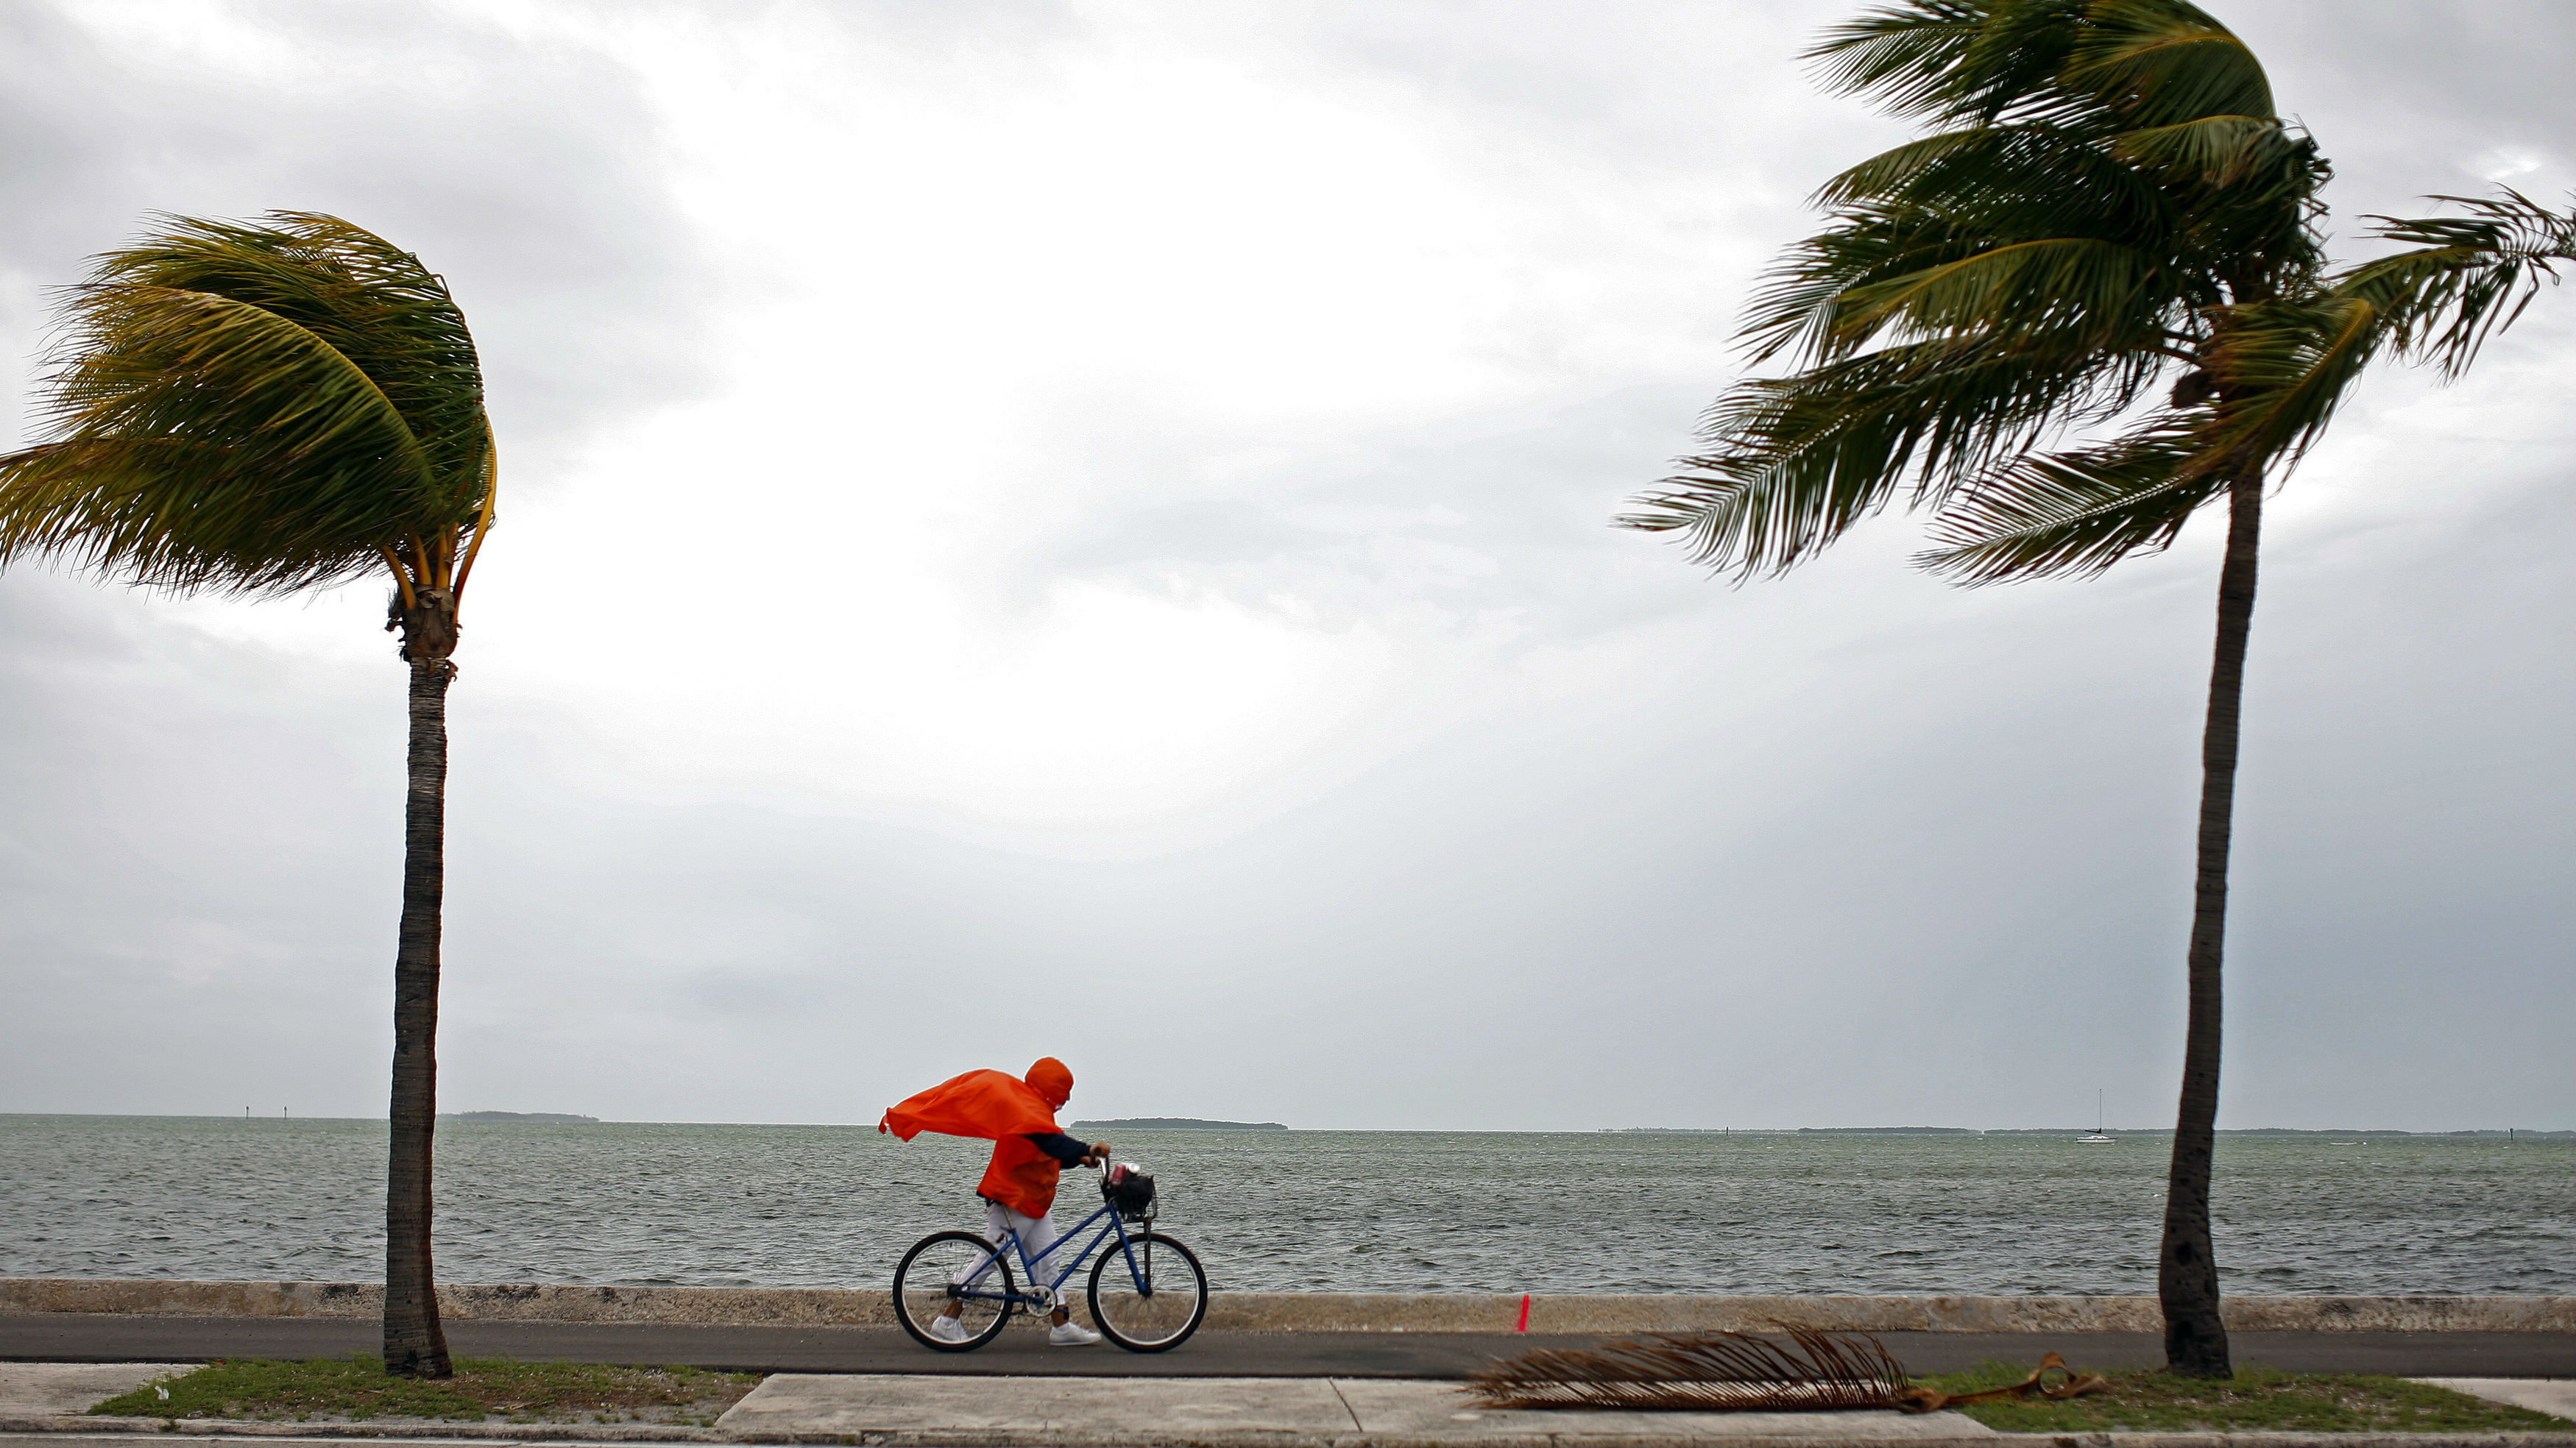 A woman walks her bike on an island in the Florida Keys September 8, 2008. Hurricane Ike weakened into a Category 2 storm on Monday after roaring ashore in northeastern Cuba, but forecasters say it could regain intensity as it spins toward the U.S. oil hub in the Gulf of Mexico and possibly New Orleans.